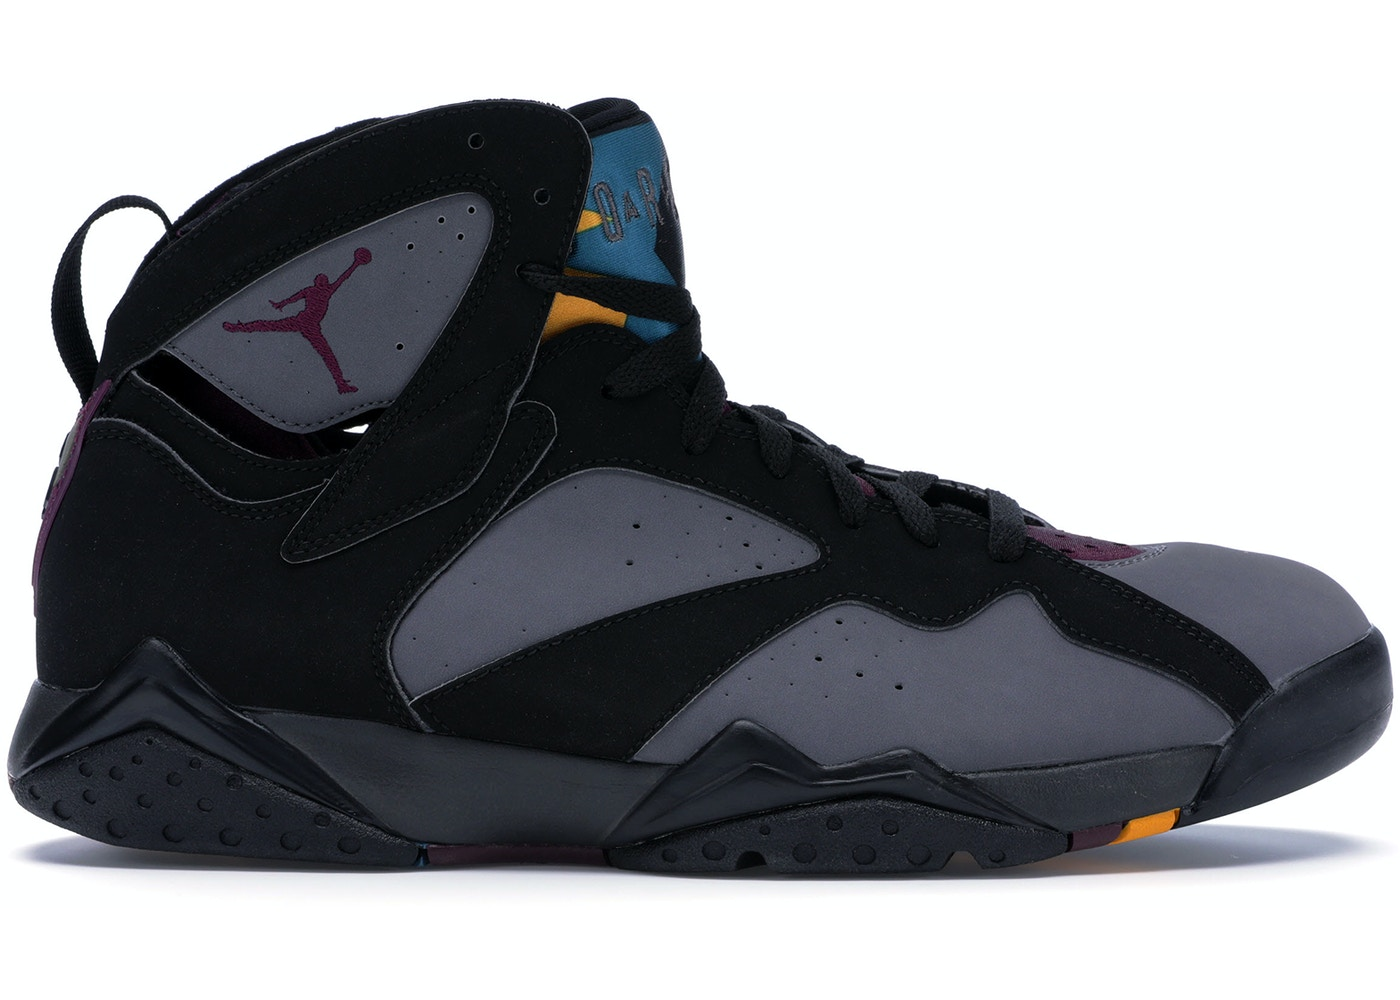 timeless design 3e984 60cf4 Jordan 7 Retro Bordeaux (2015)